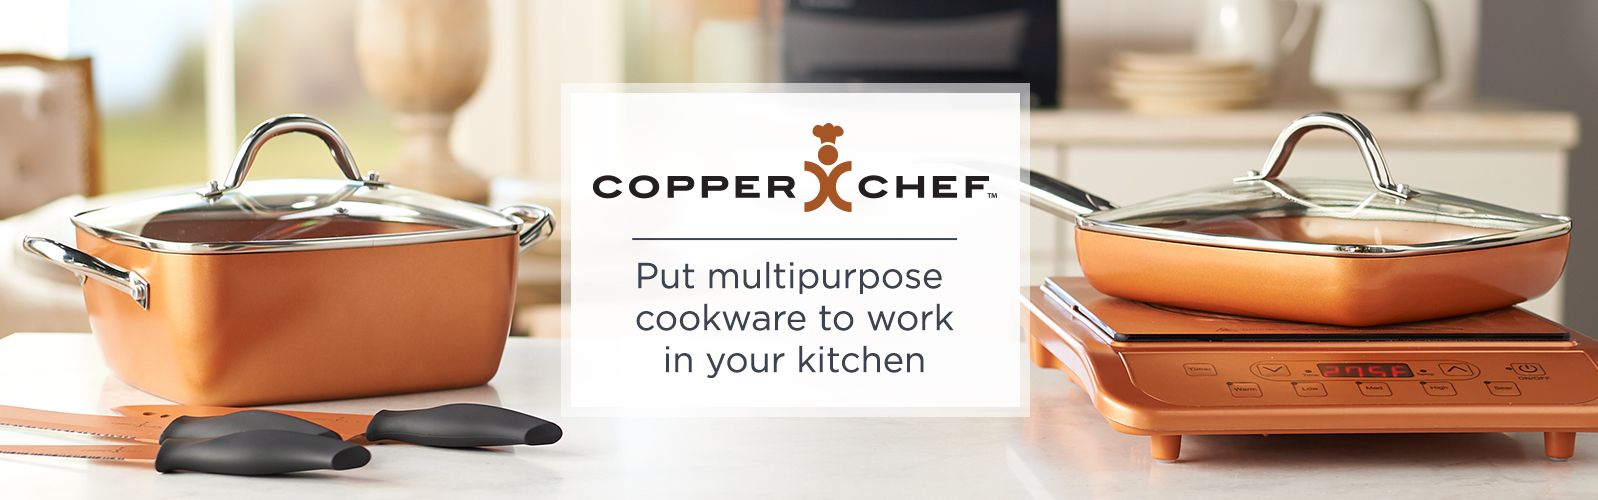 qvc.com shopping kitchen fingerhut copper chef cookware nonstick pans more qvc com put multi purpose to work in your